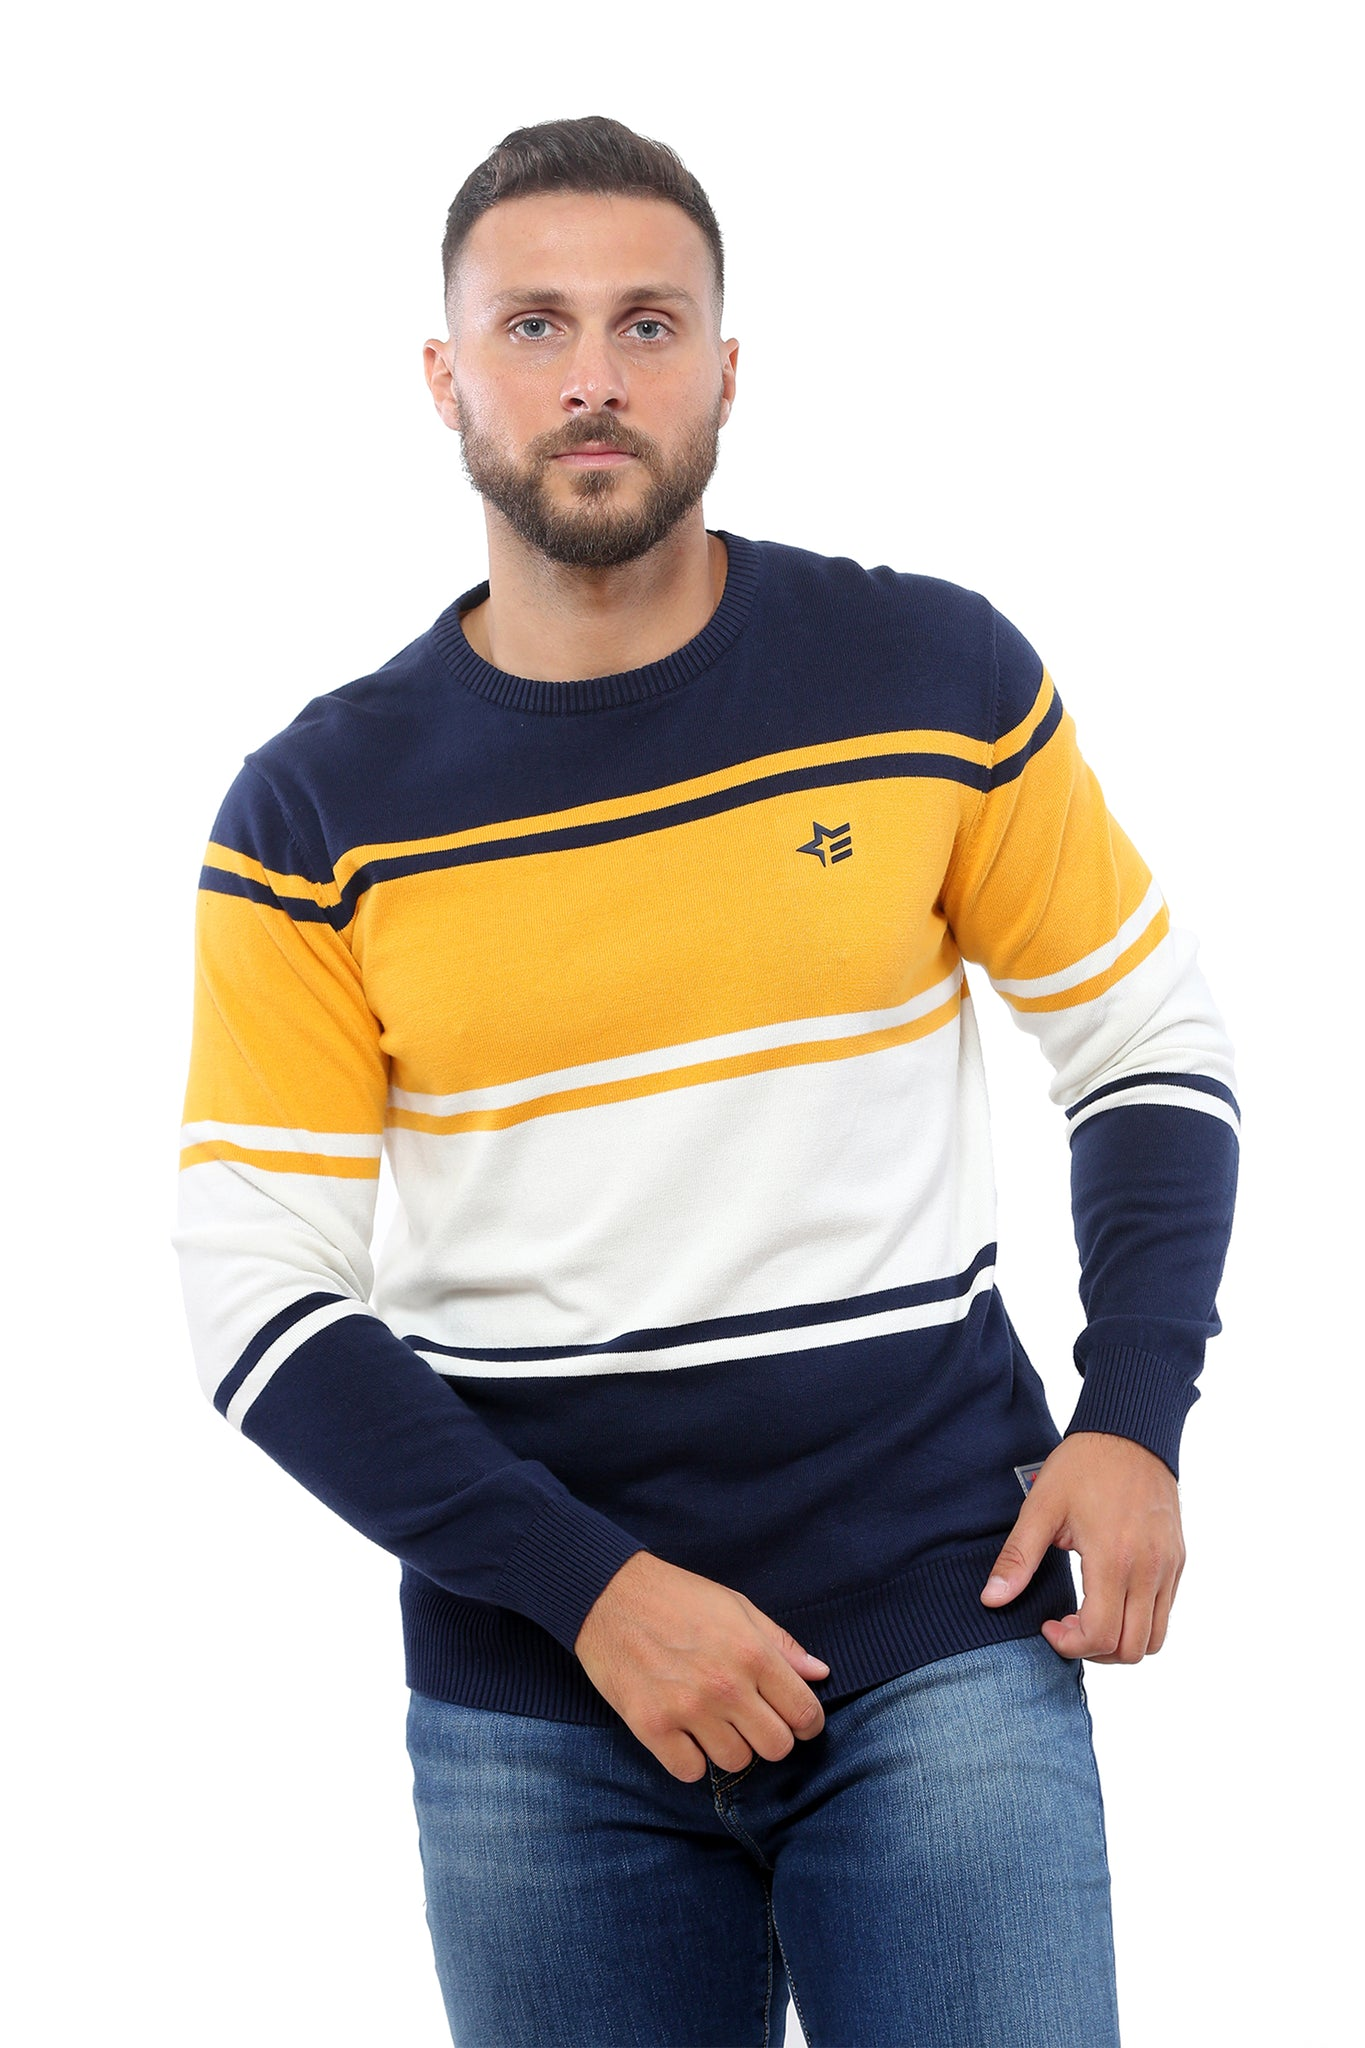 Sweater with Stripes | Dark Navy with Mustard and White